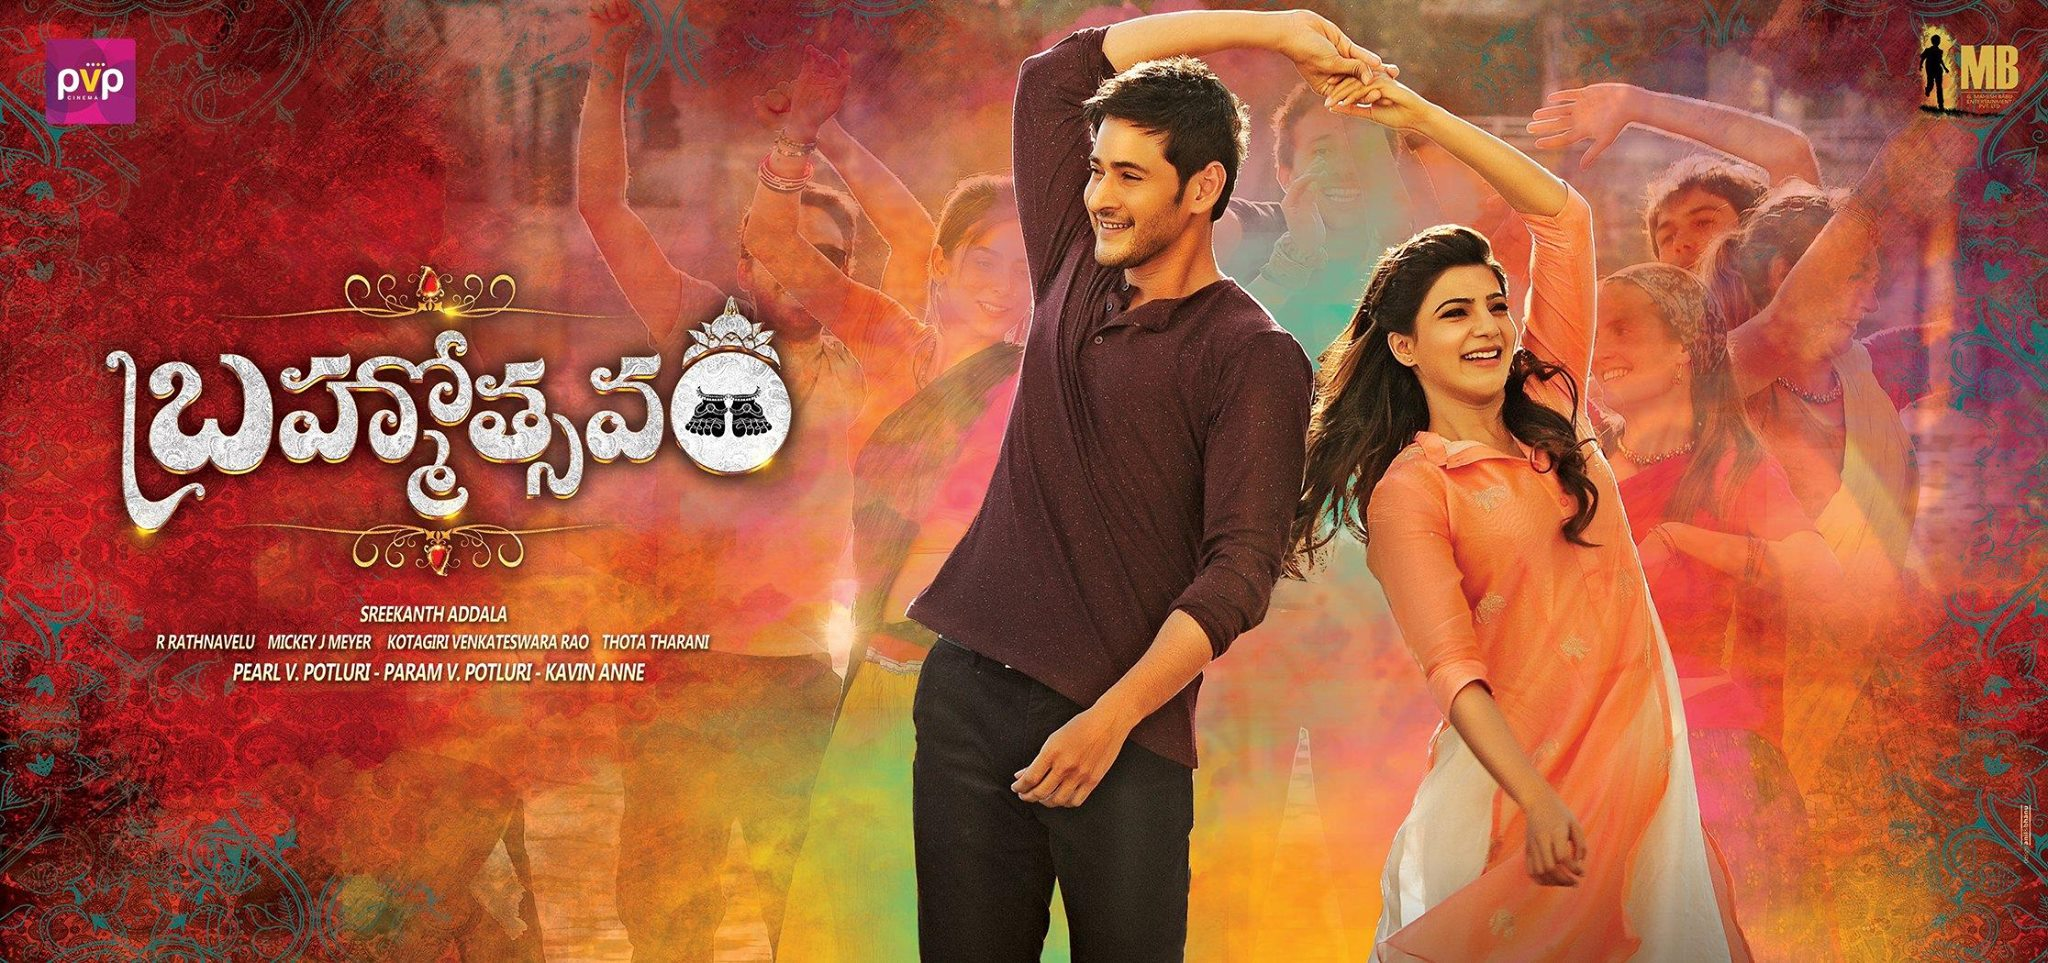 Mahesh Babu Brahmotsavam Movie Ultra Hd Posters All Wallpapers